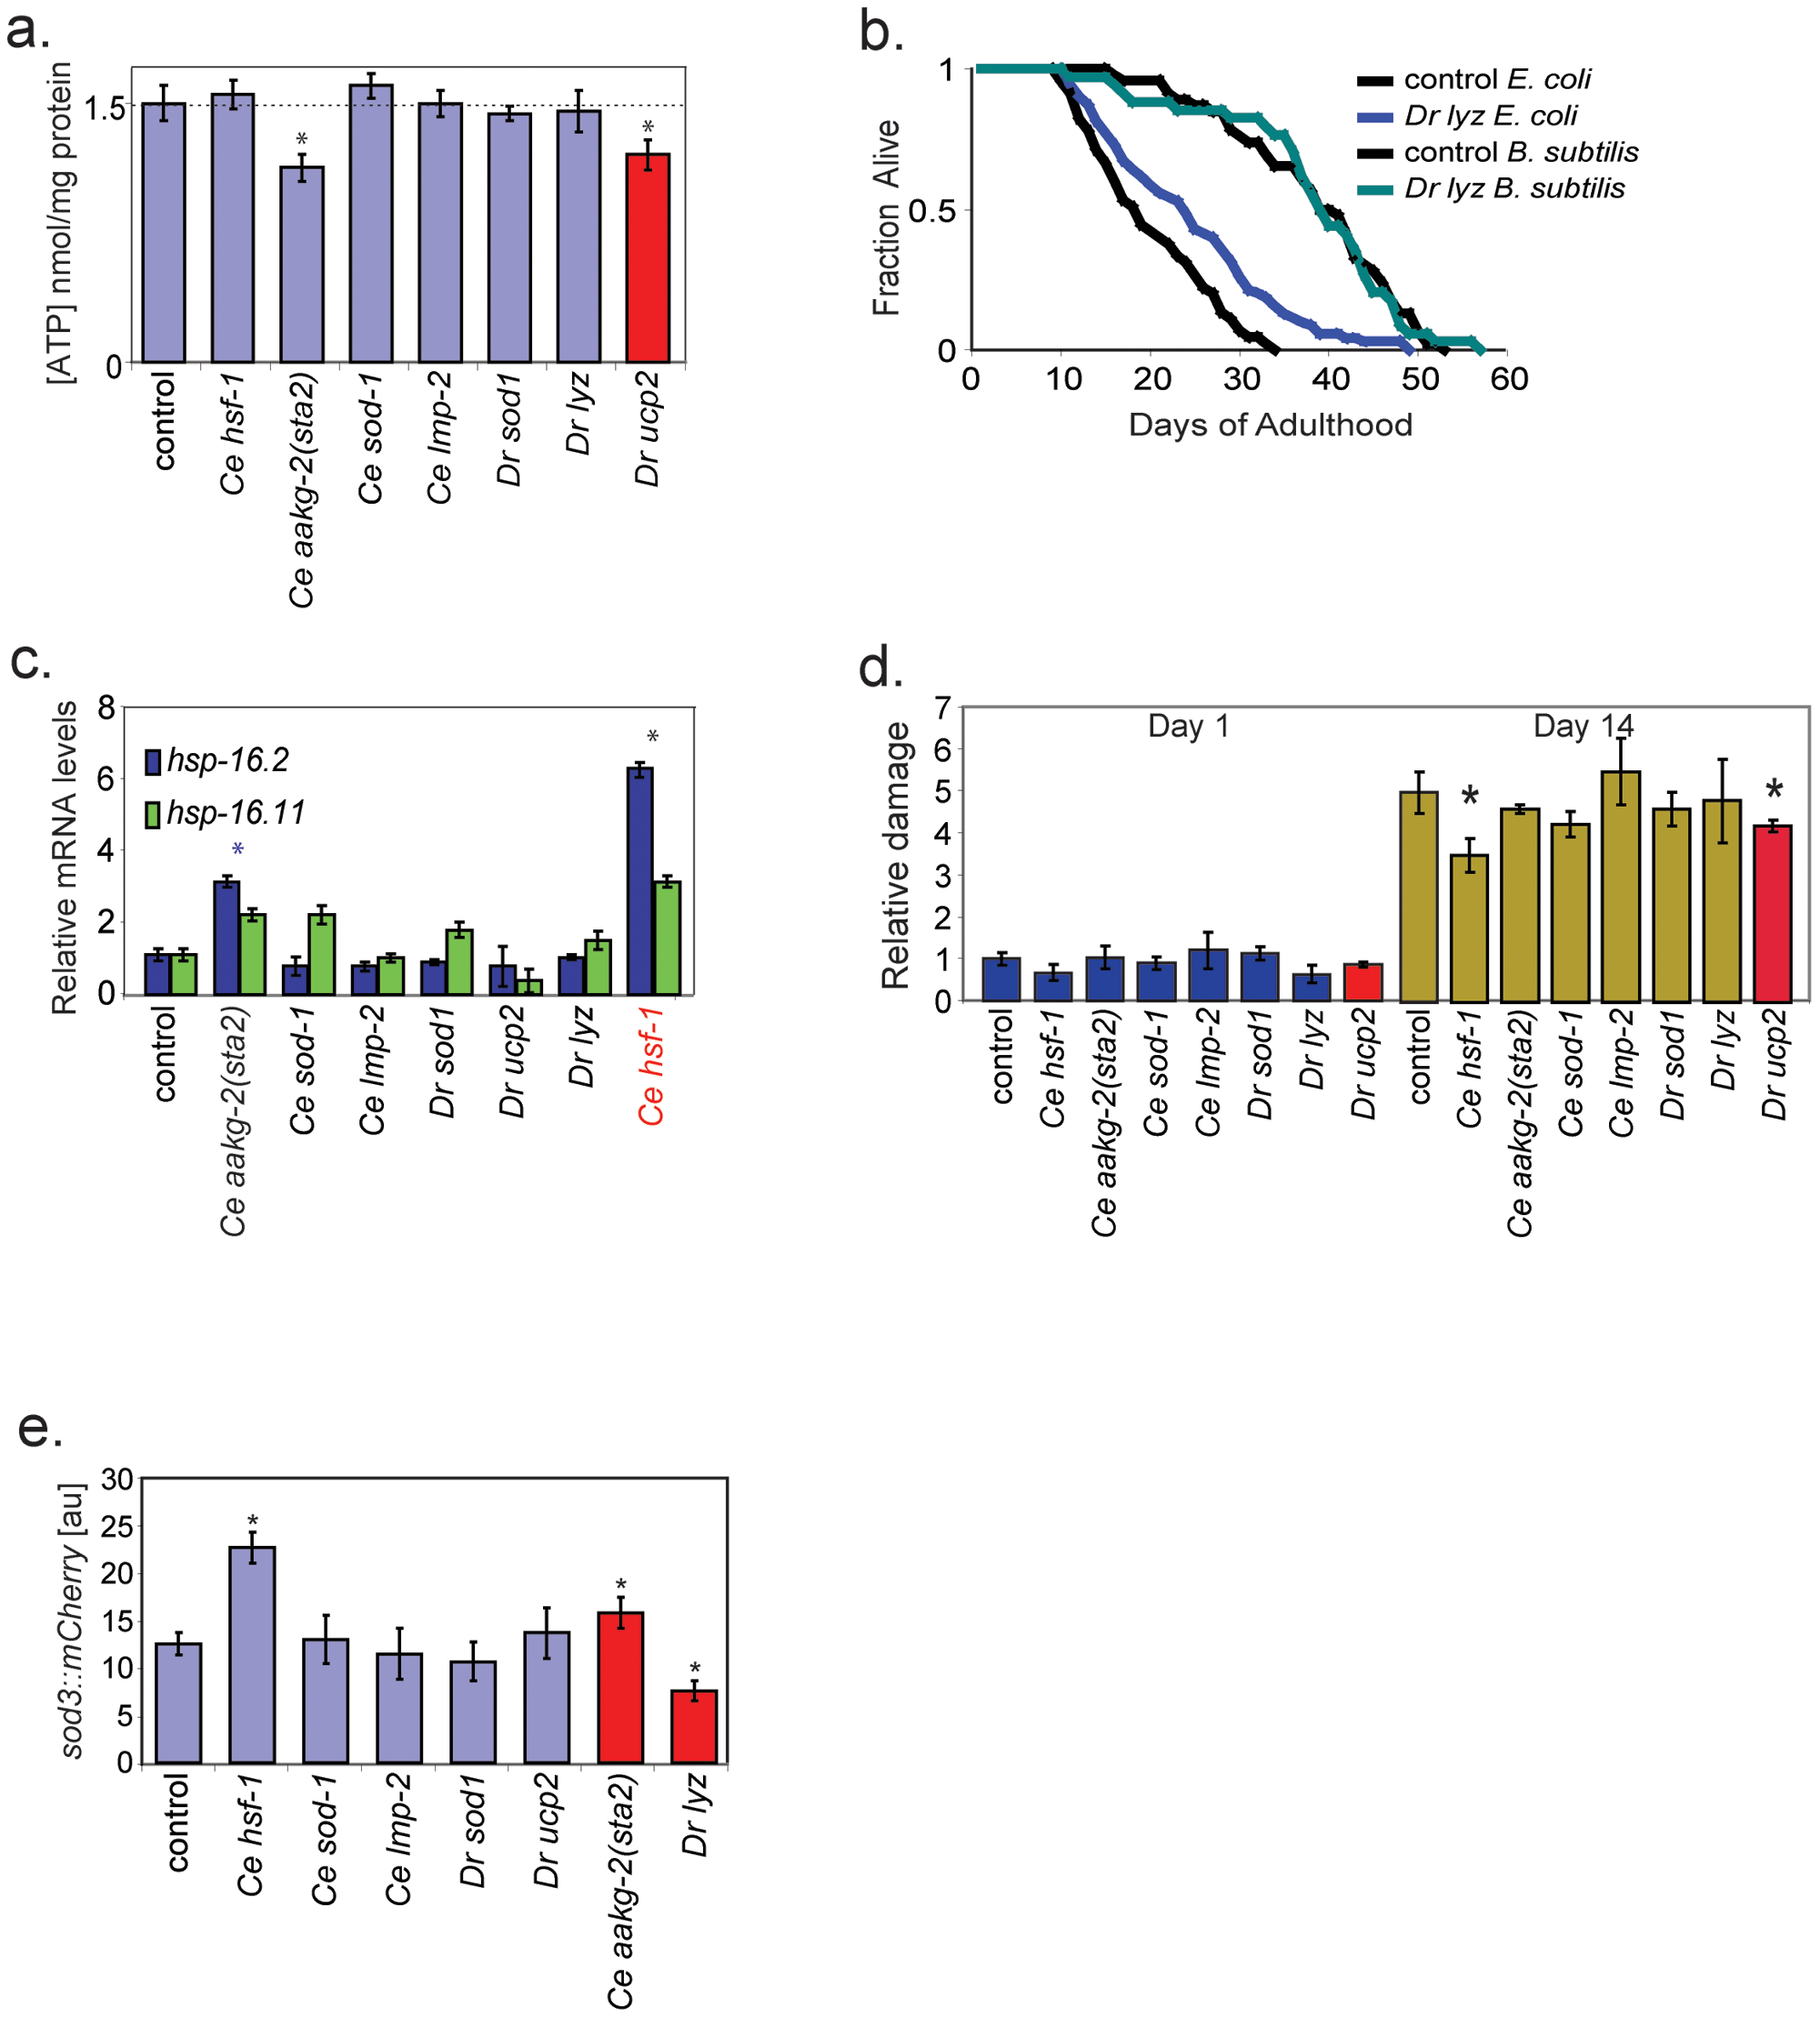 Assays showing functional activity of the aging genes.